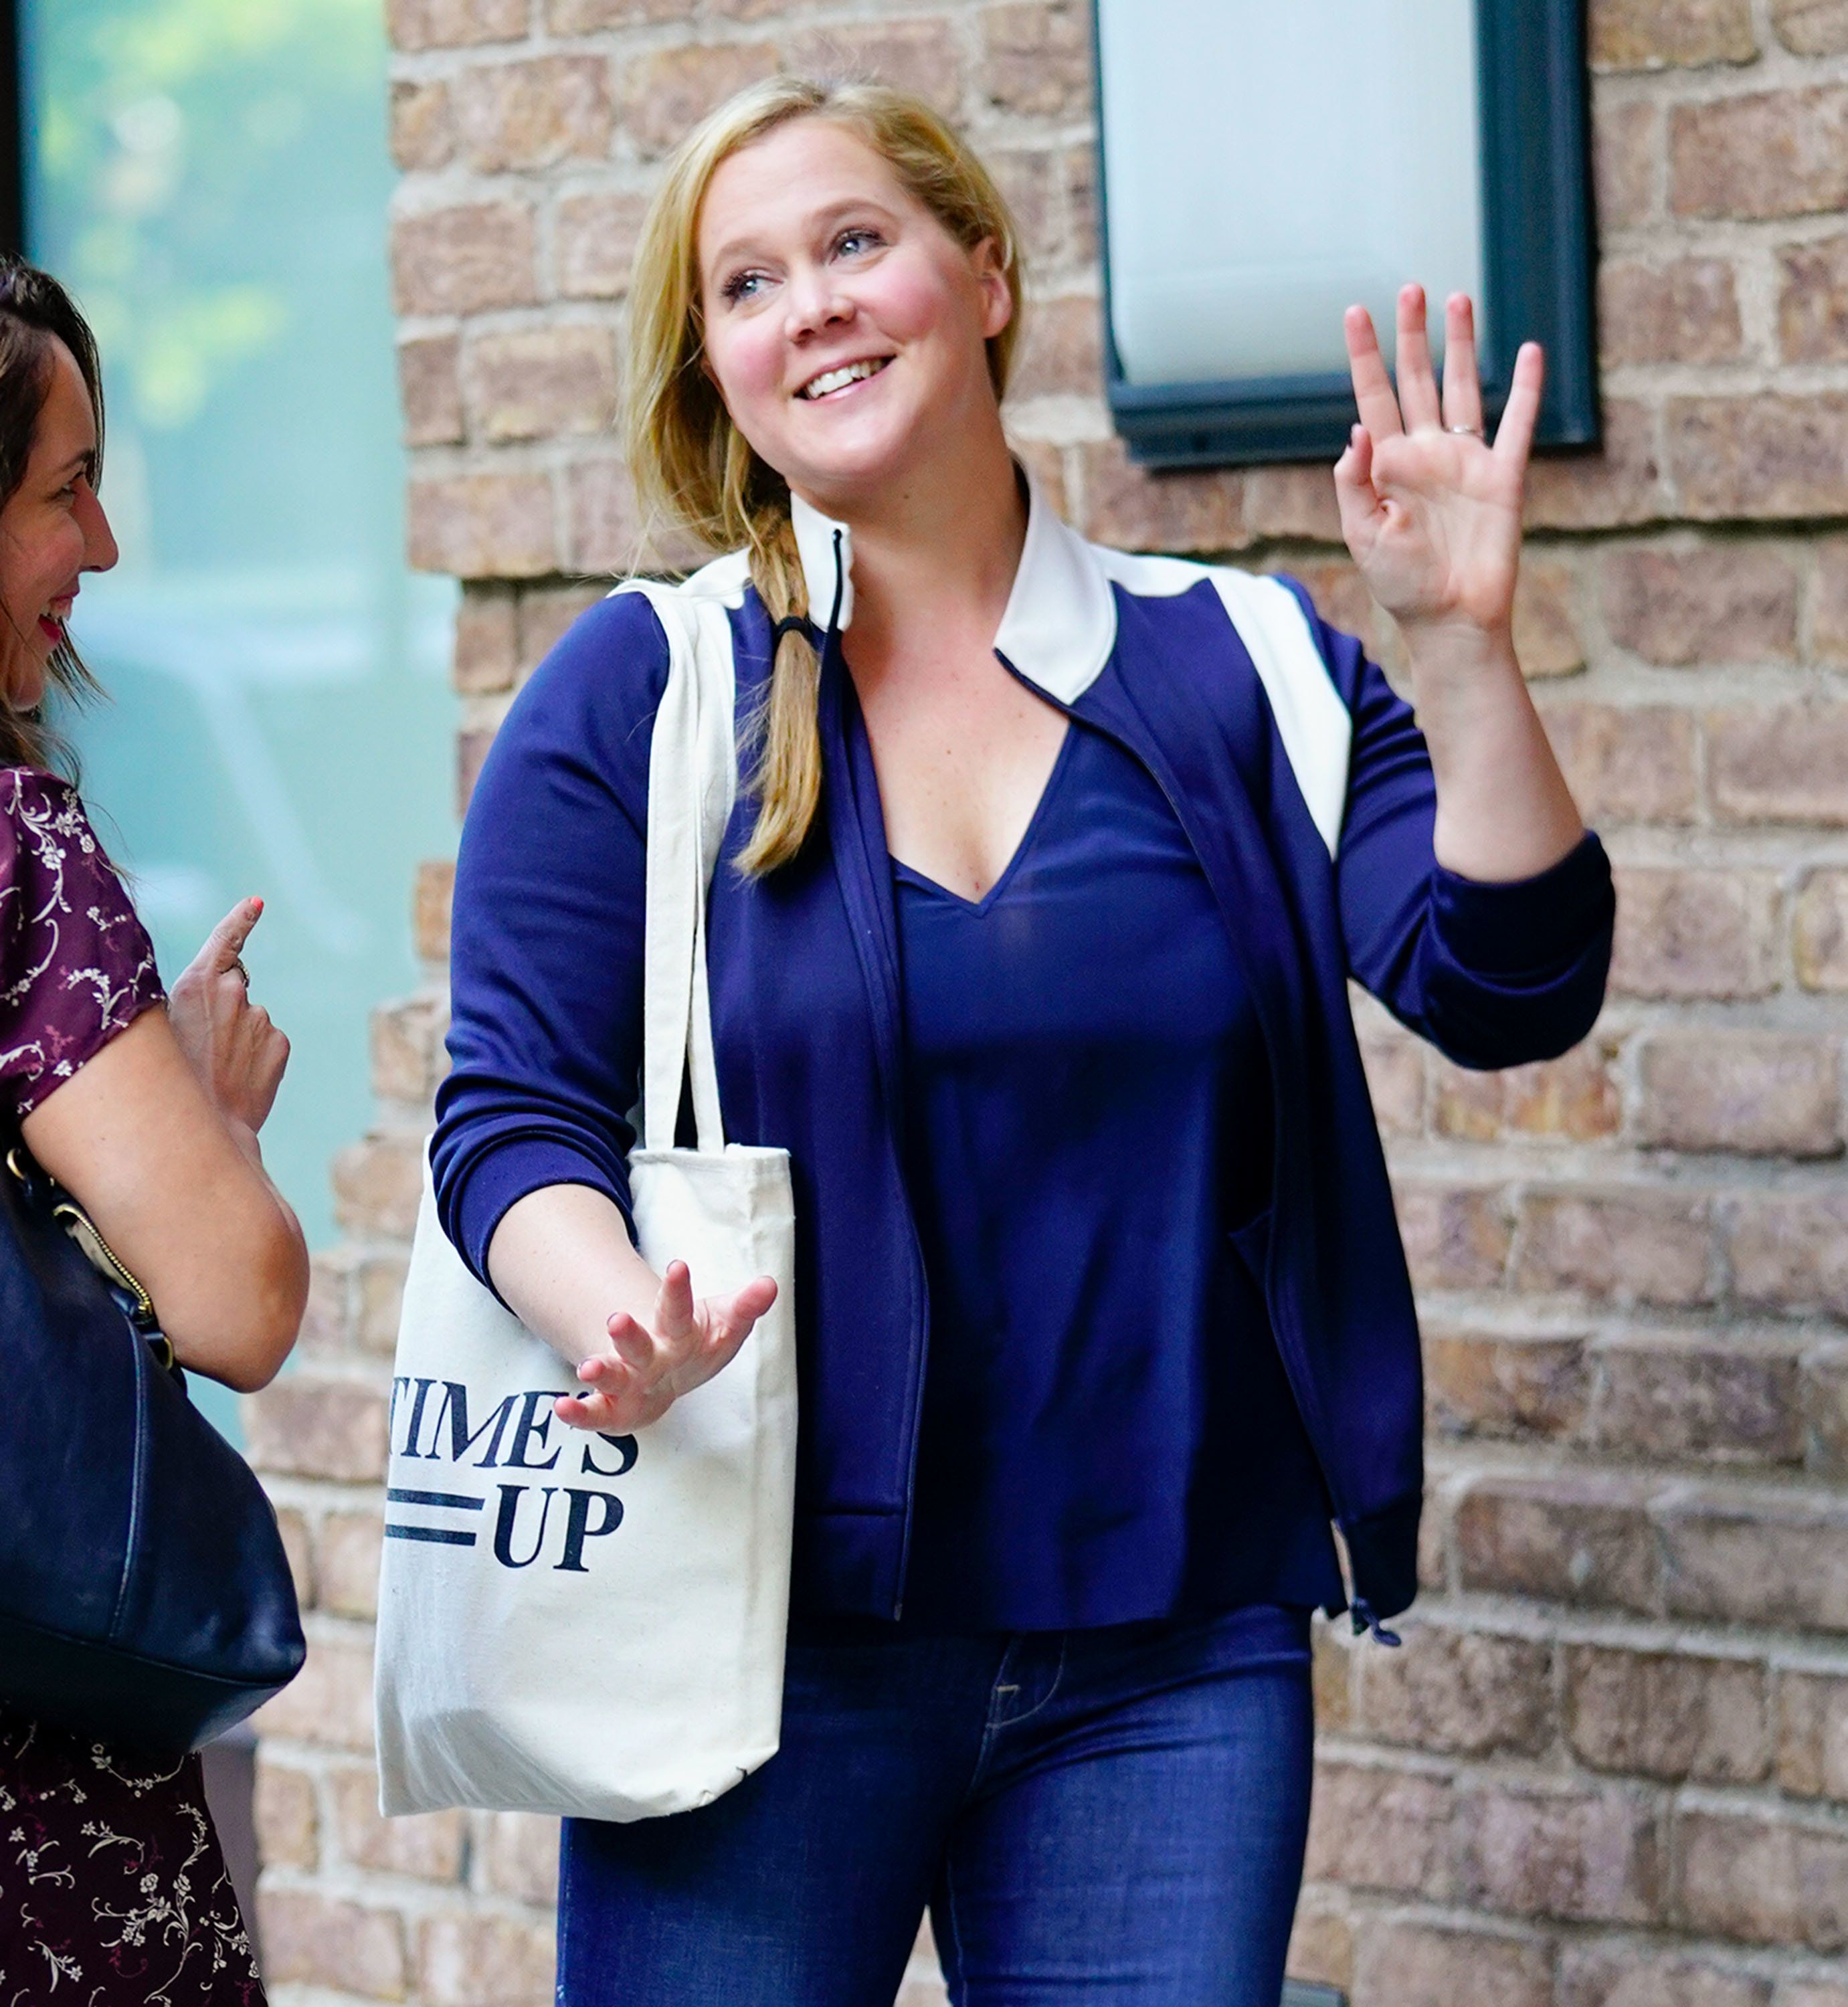 NEW YORK, NY - JUNE 11:  Amy Schumer does some funny moves on June 11, 2018 in New York City.  (Photo by Gotham/GC Images)